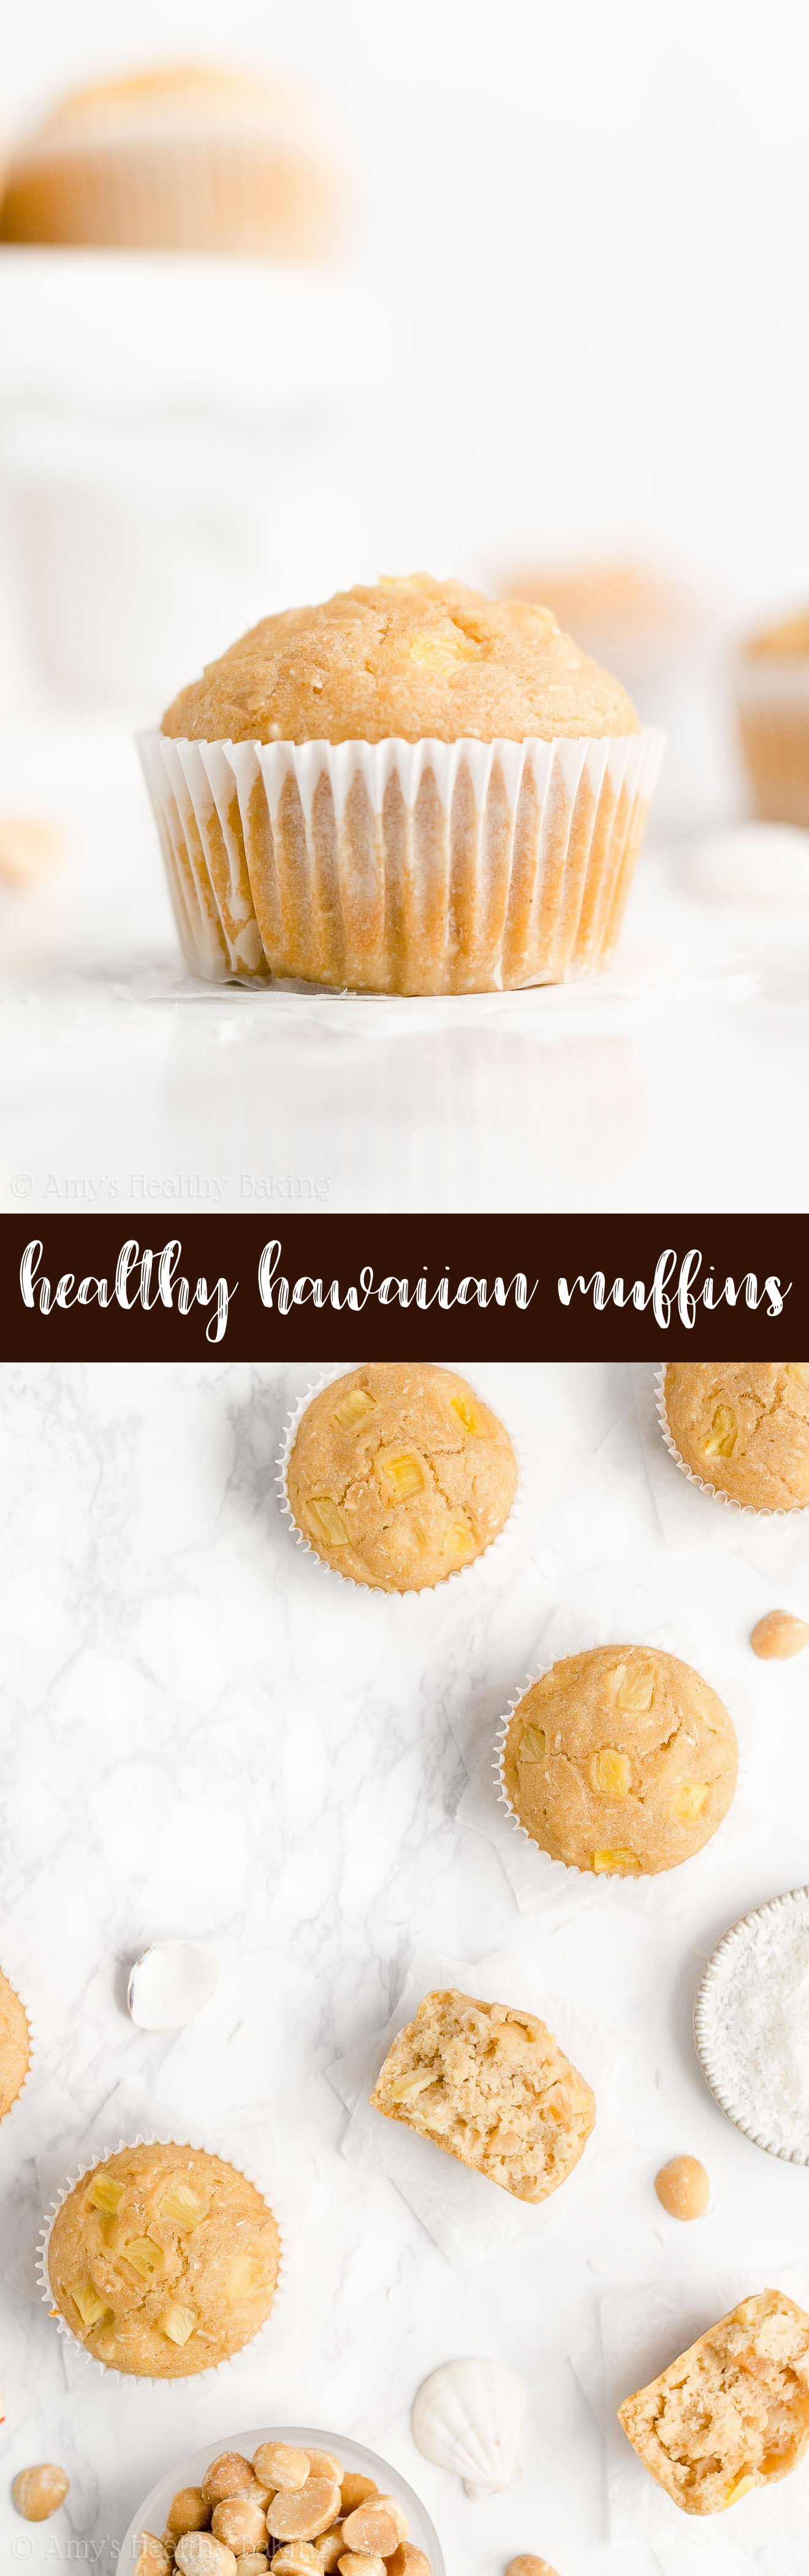 Best Ever Healthy Greek Yogurt Hawaiian Pineapple, Coconut & Macadamia Nut Muffins